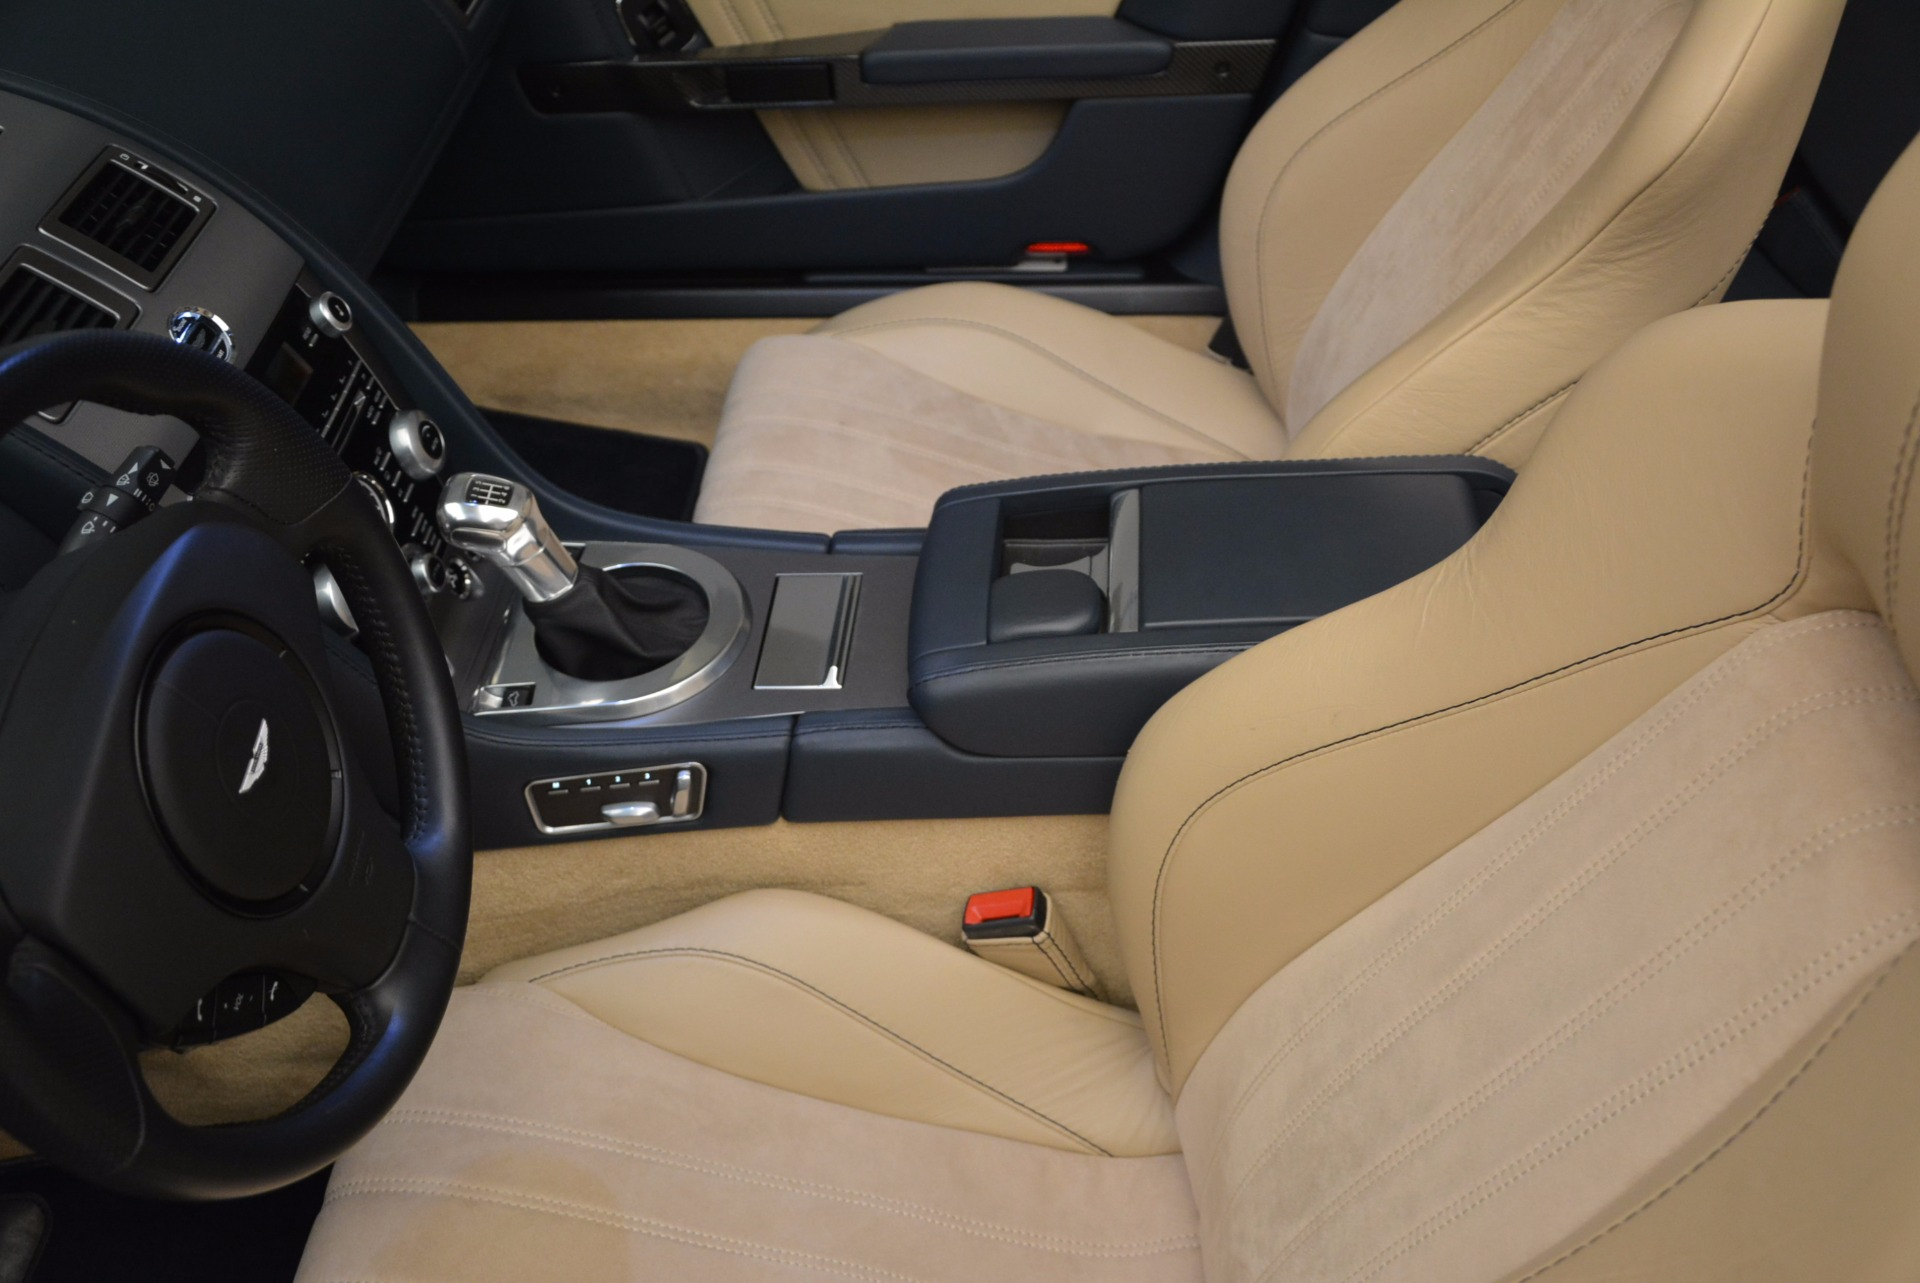 Used 2012 Aston Martin DBS Volante For Sale In Westport, CT 644_p26